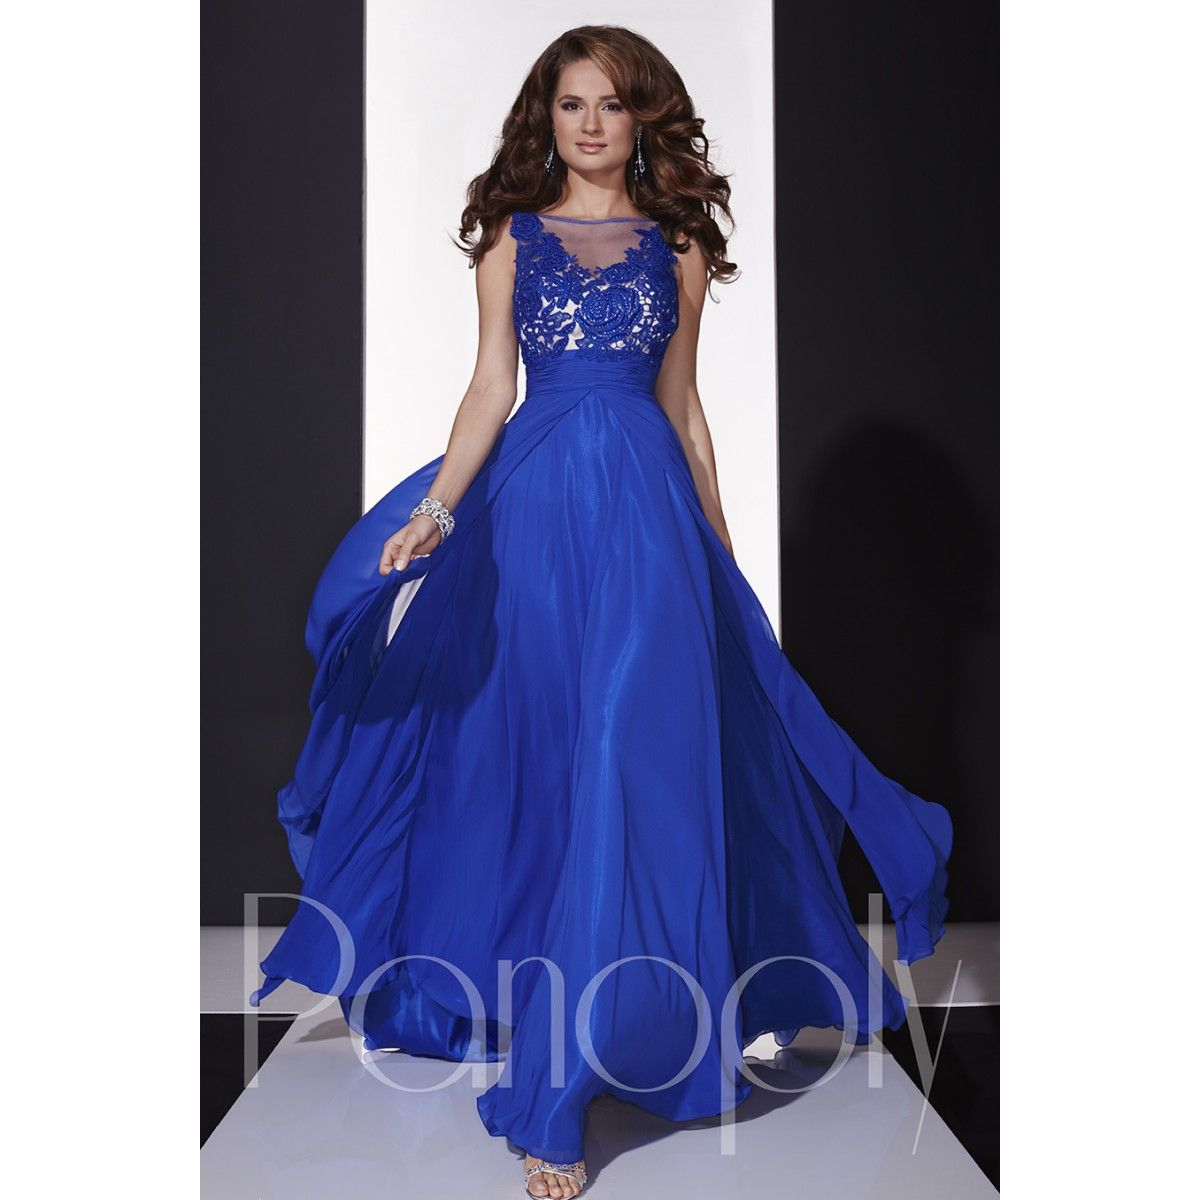 New Prom Gowns Available at Ella Park Bridal | Newburgh, IN ...